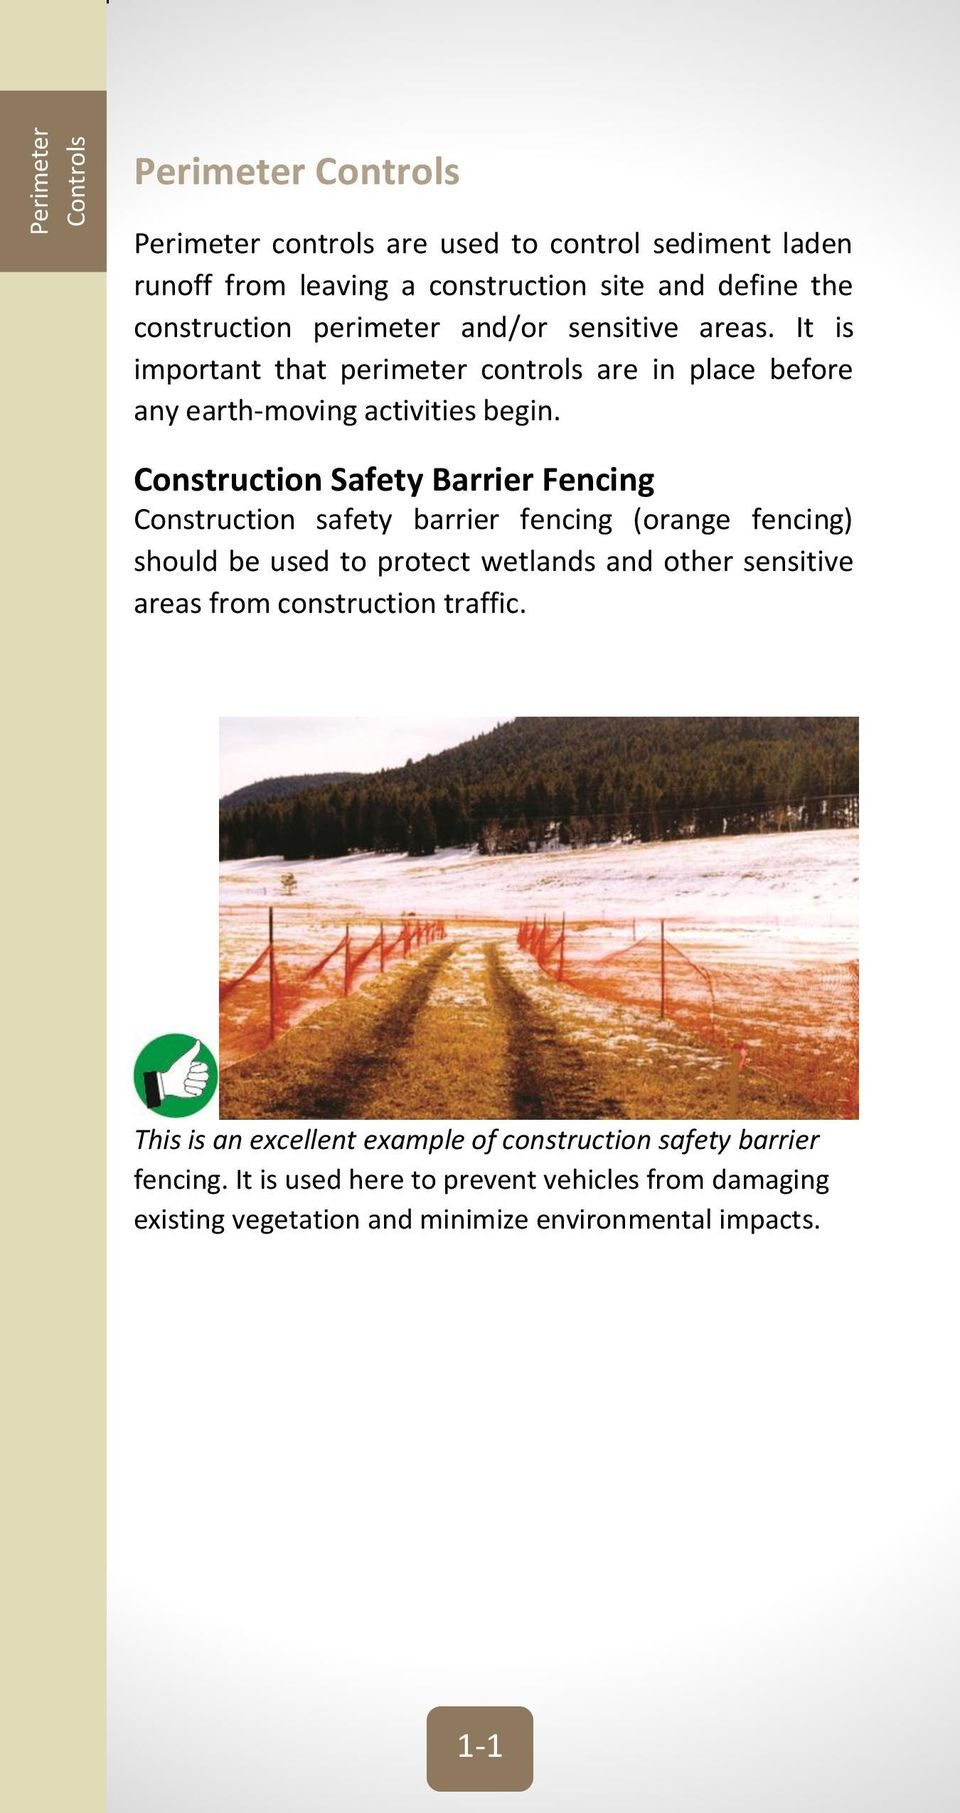 Construction Safety Barrier Fencing Construction safety barrier fencing (orange fencing) should be used to protect wetlands and other sensitive areas from